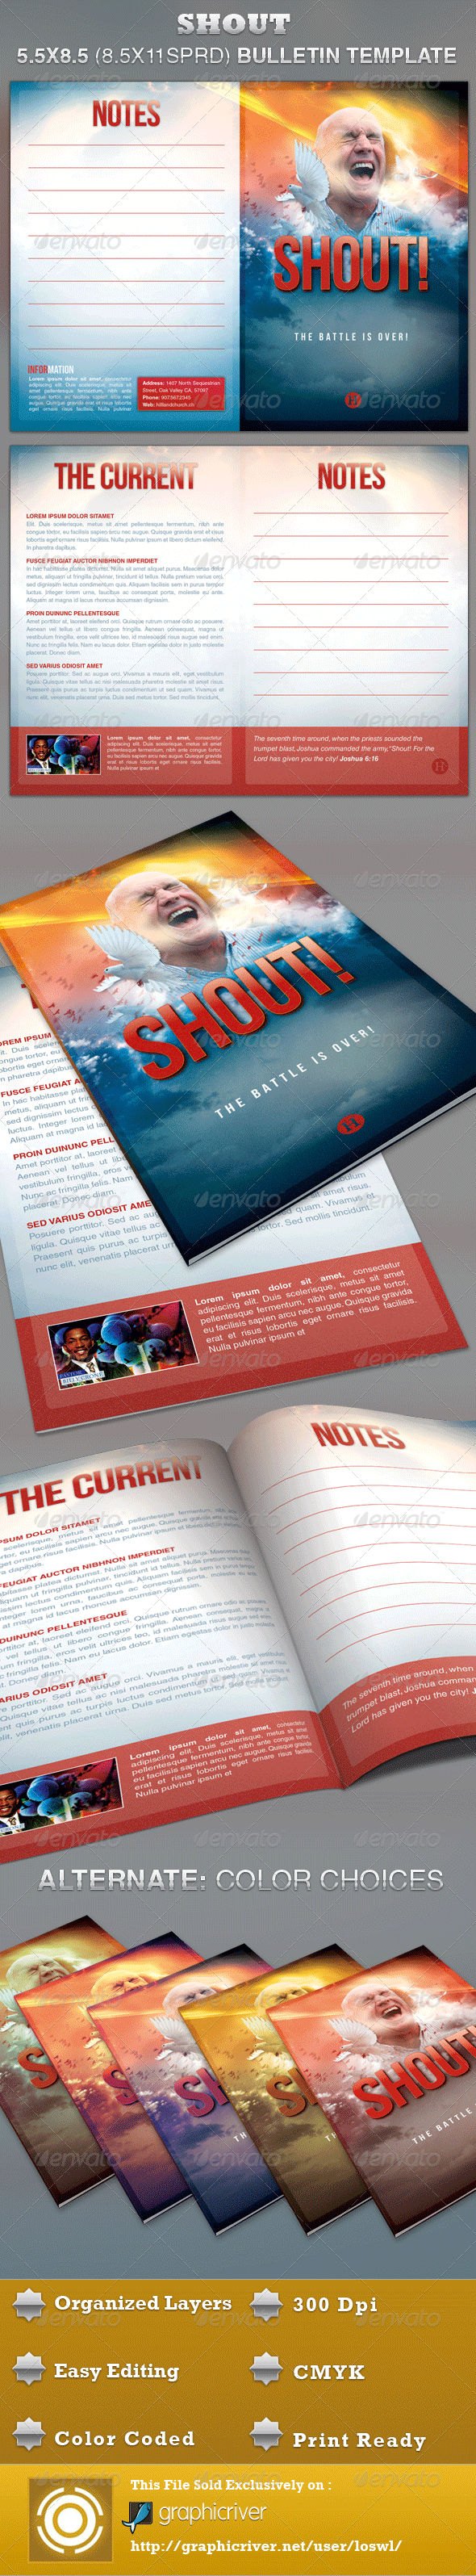 GraphicRiver Shout Church Bulletin Template 3276868